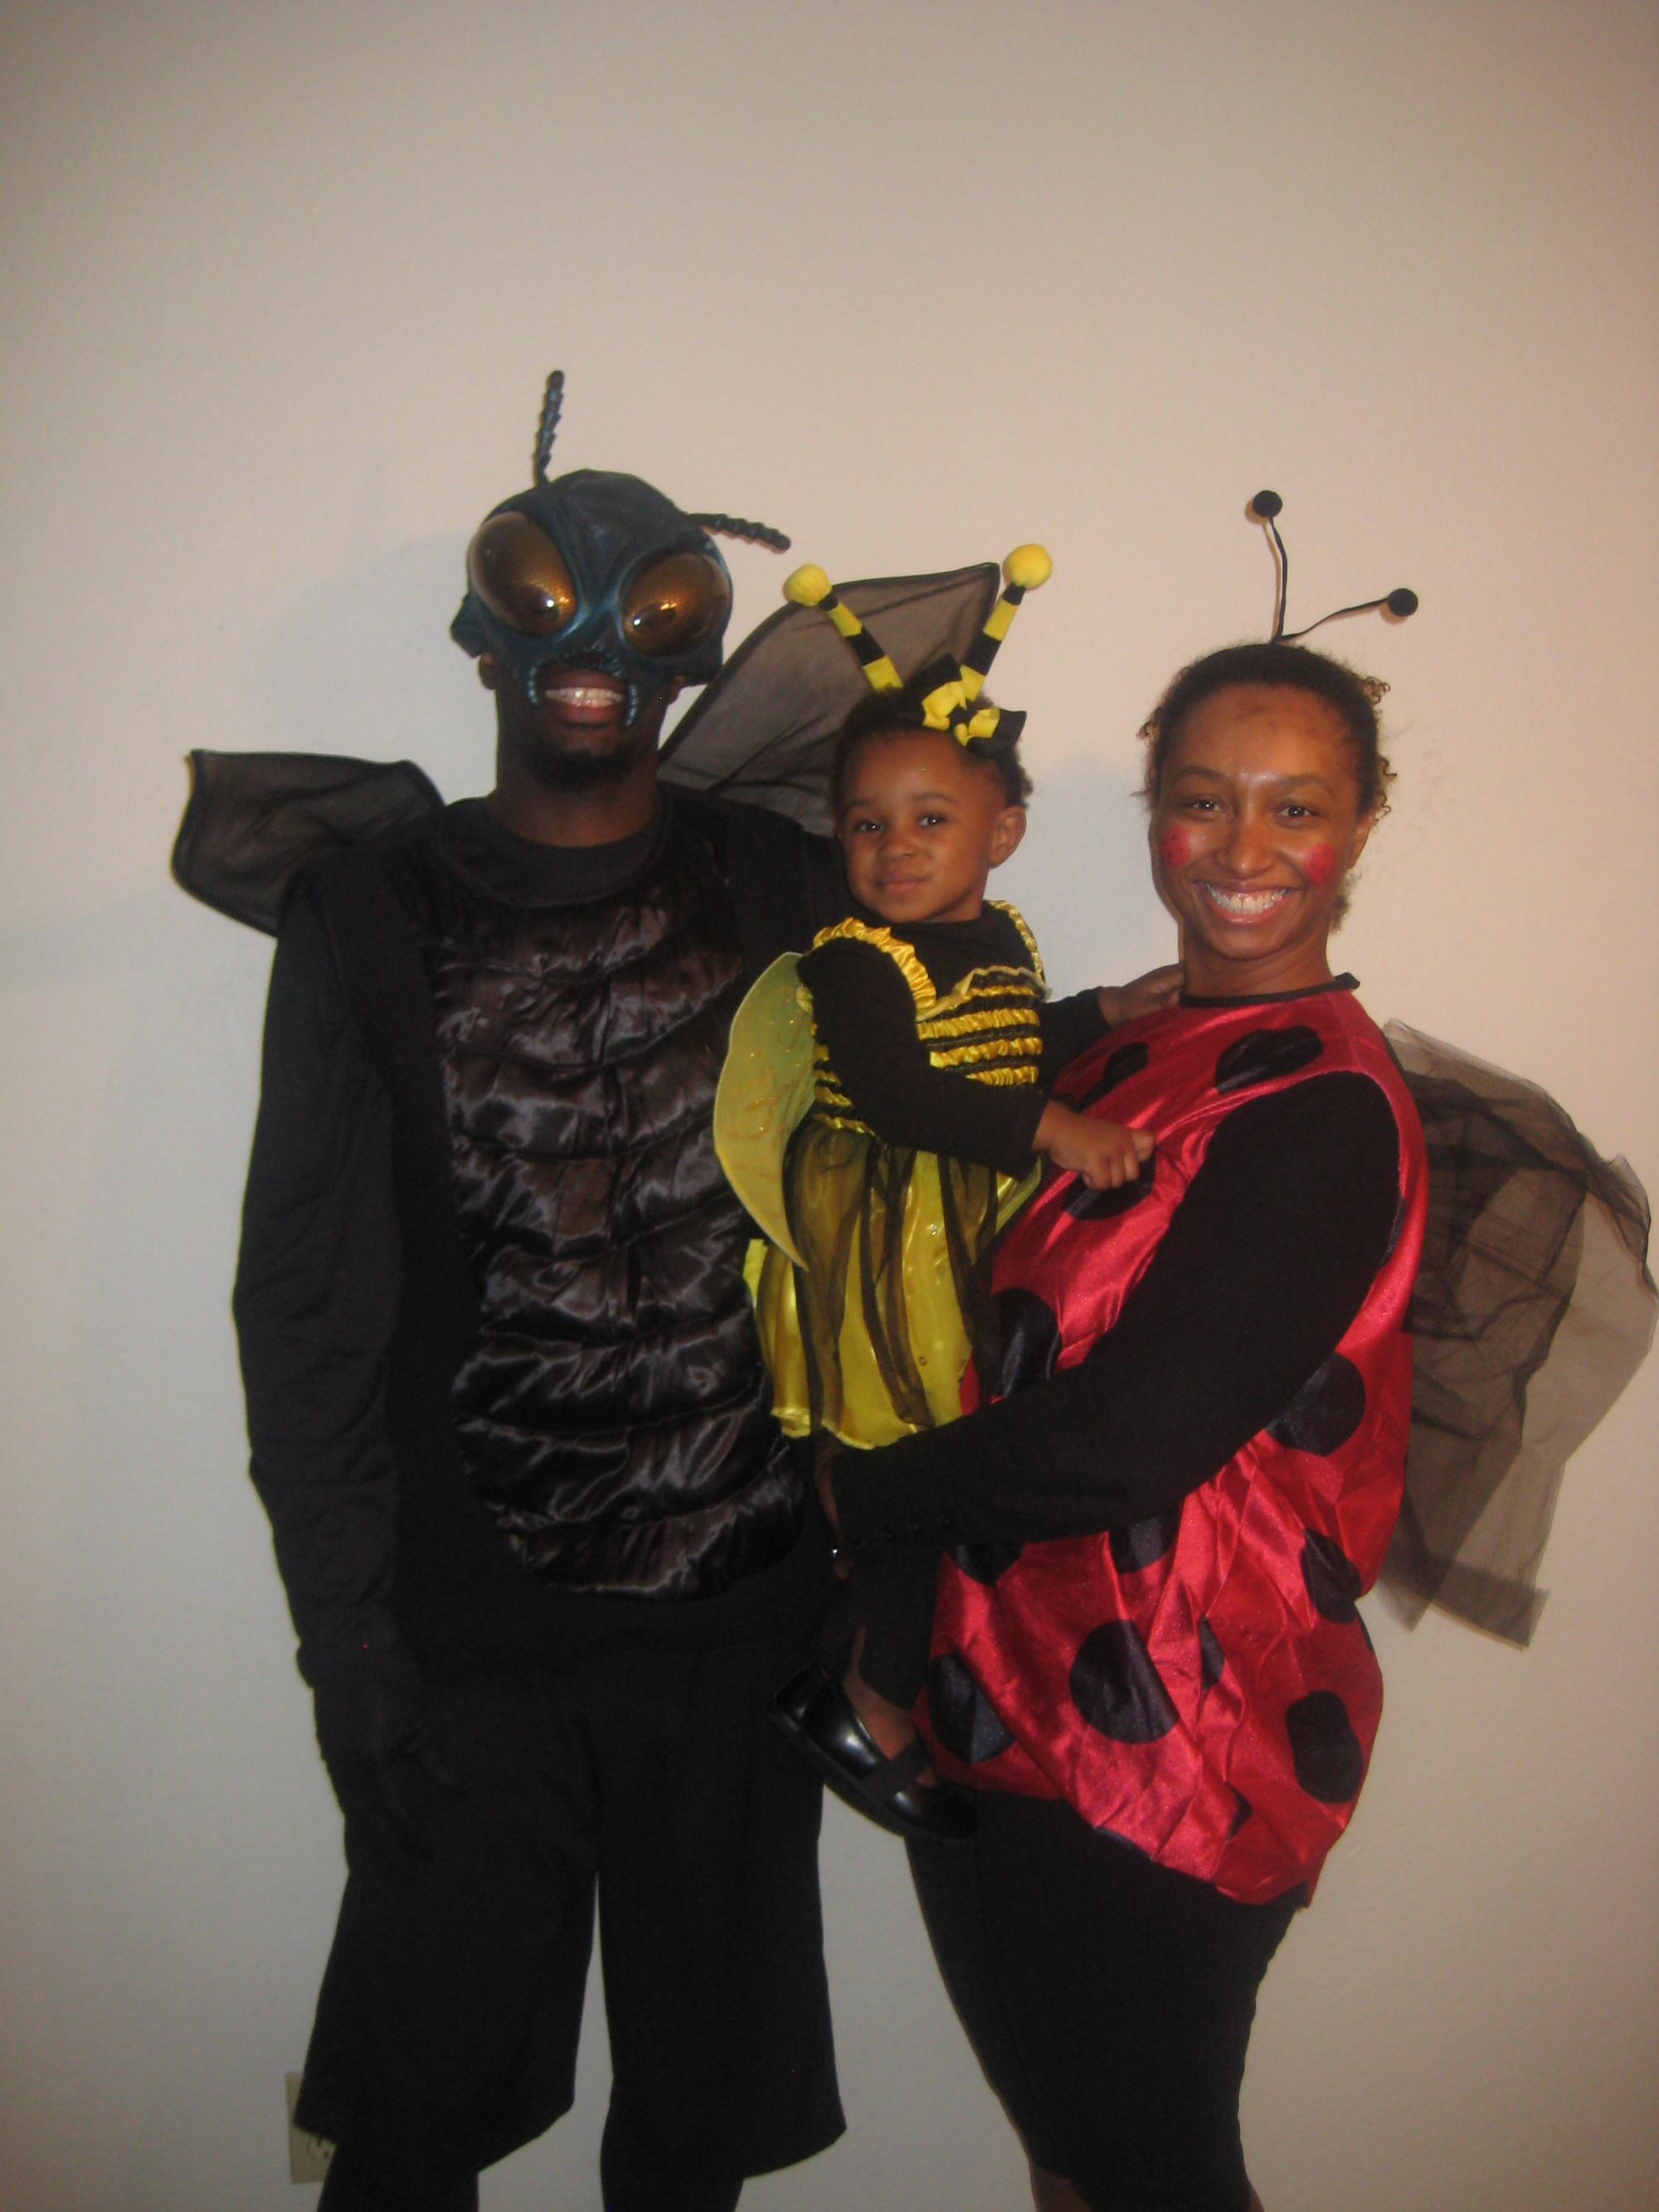 Who knew bugs could be so cute? Wee Gael Tauvia with parents Teohn Conner '03 and Lyone Conner '04